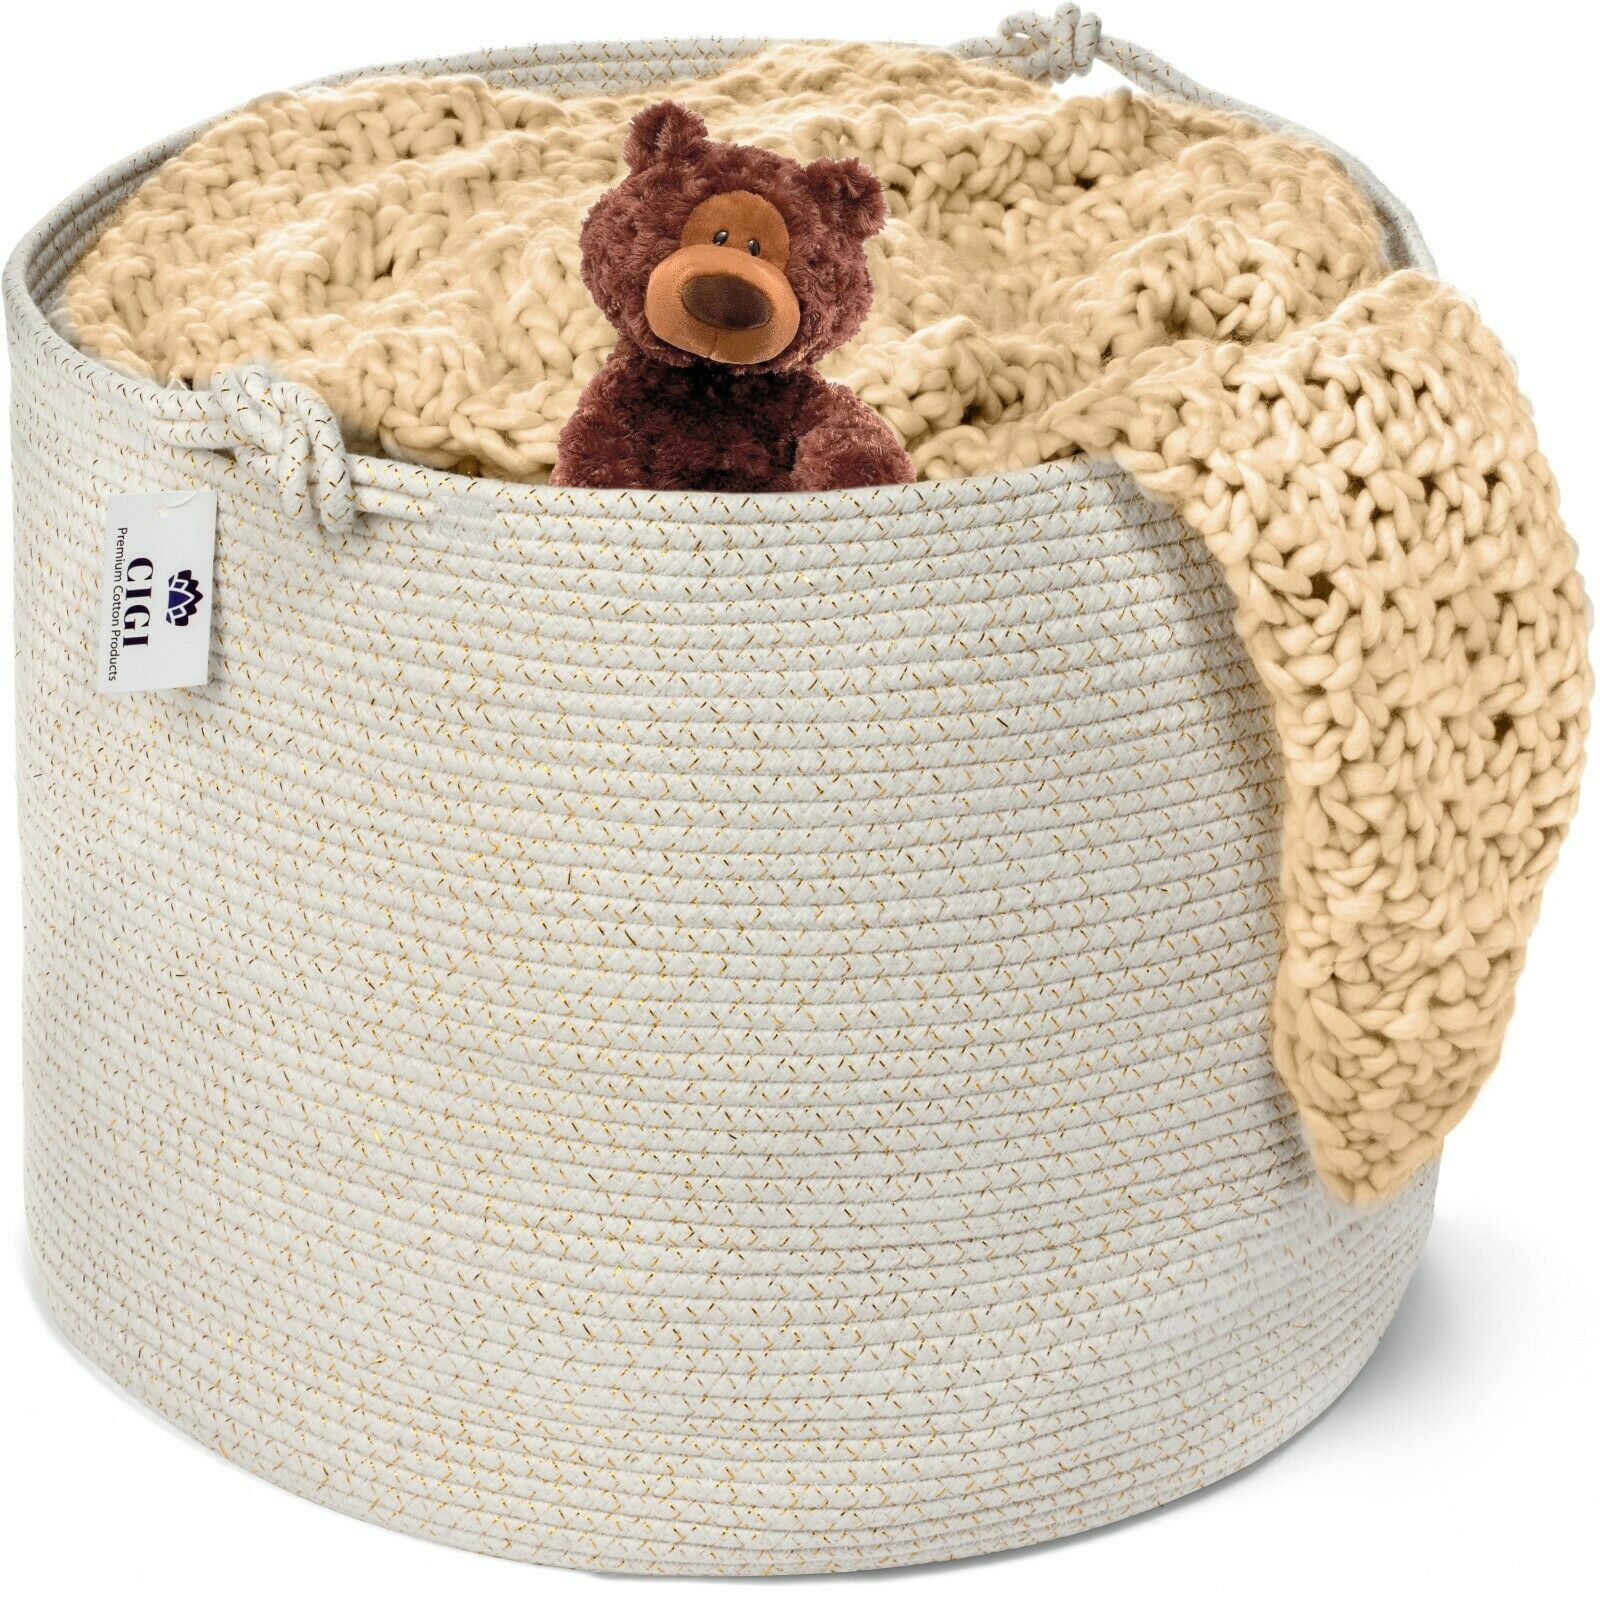 Extra Large Cotton Rope Basket, Neutral White and Gold Hampe